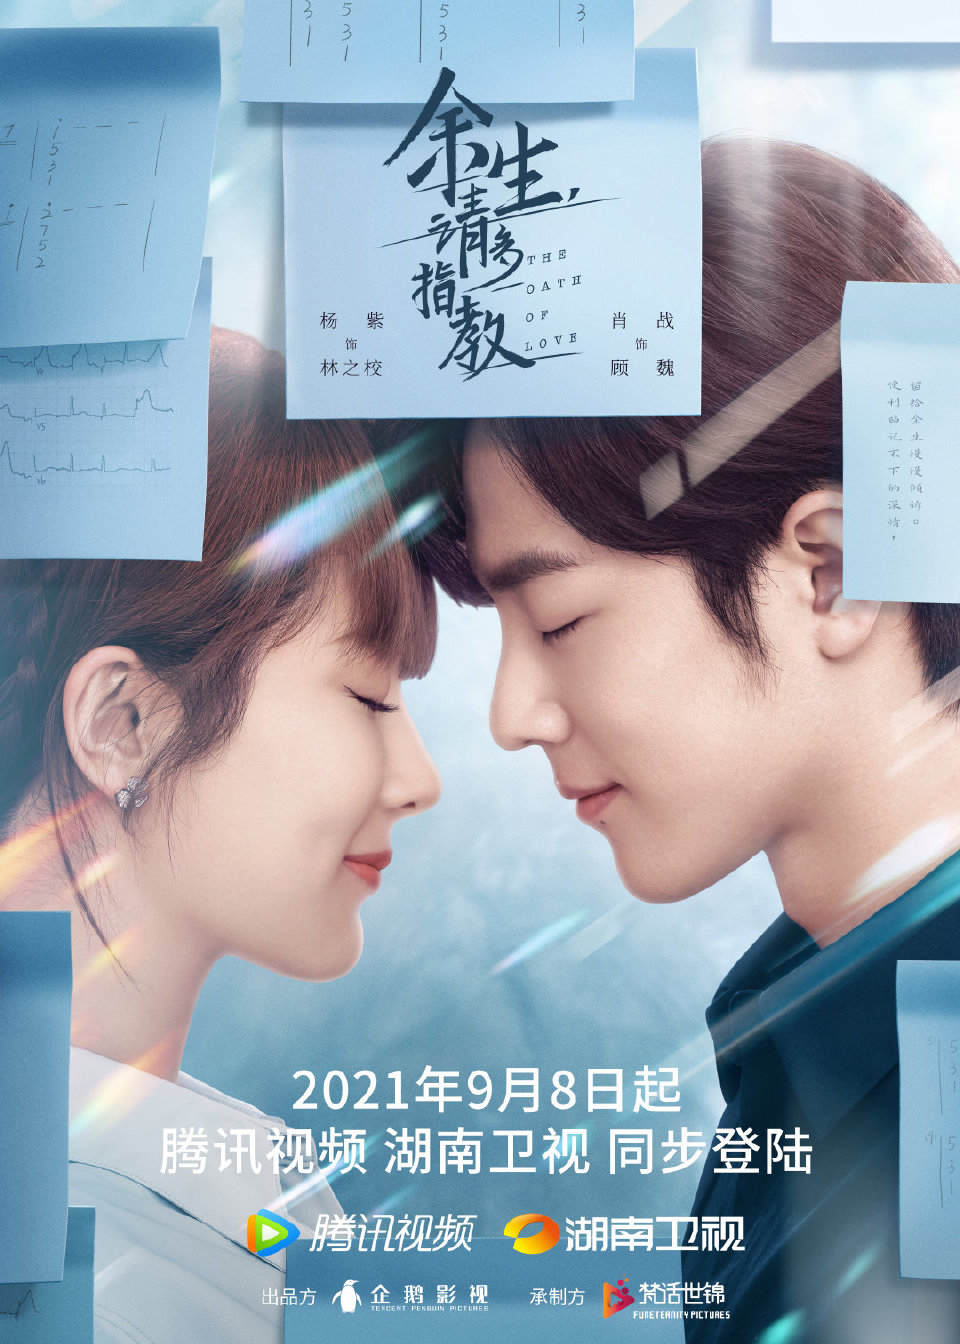 the oath of love poster